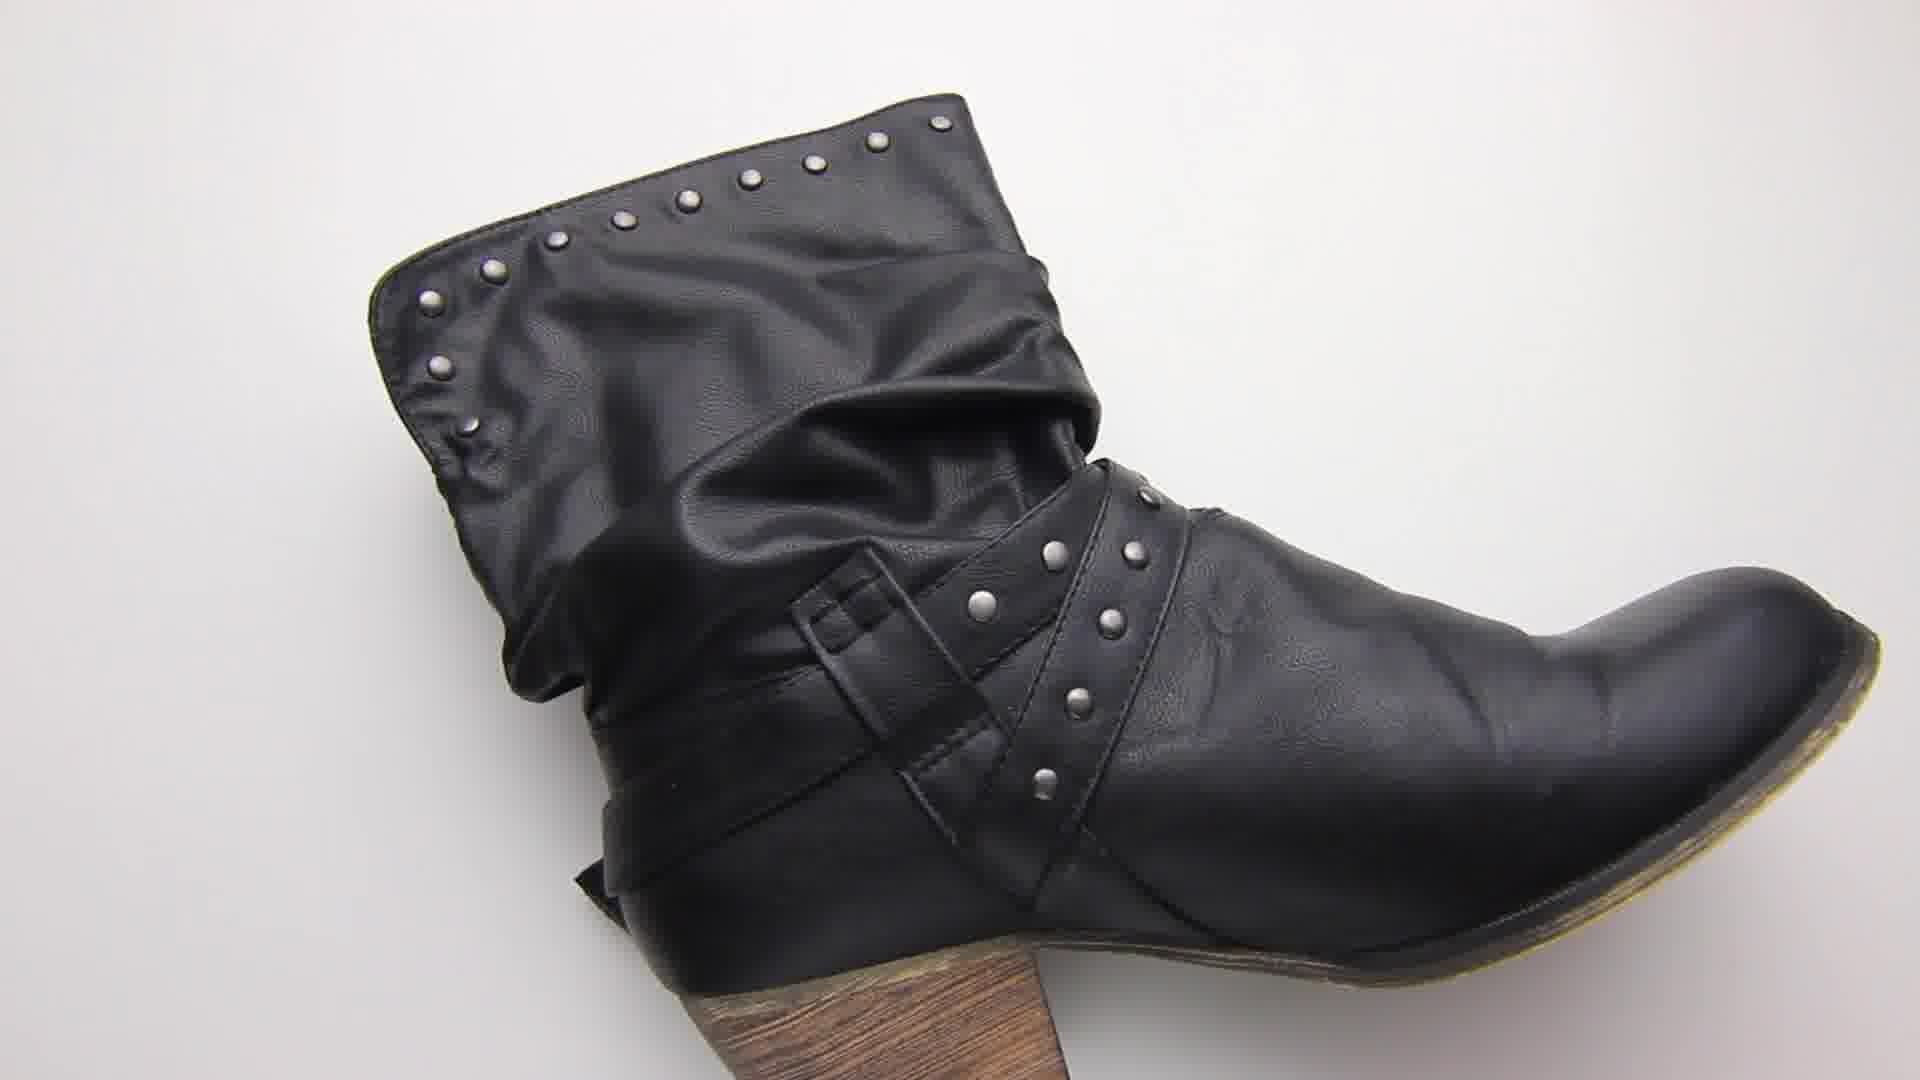 Cleaning How To Clean Leather Boots